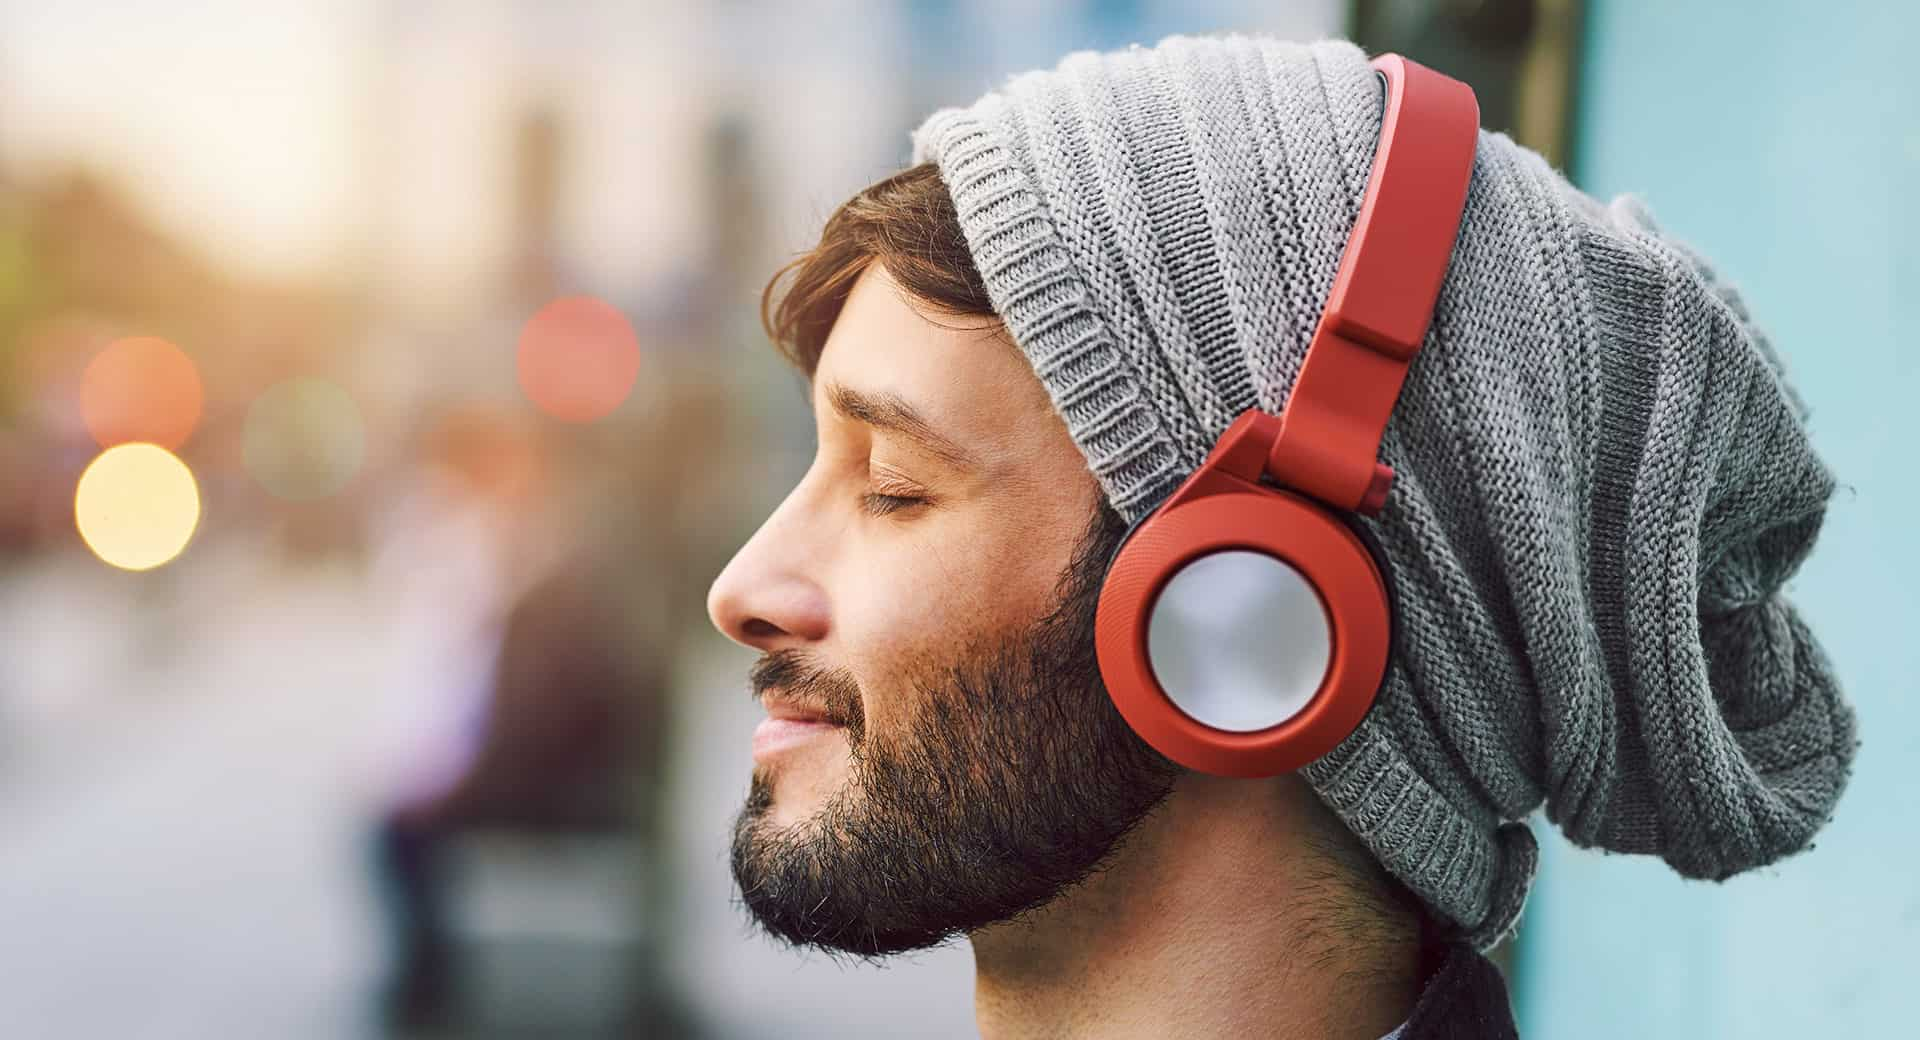 Man wearing red headphones